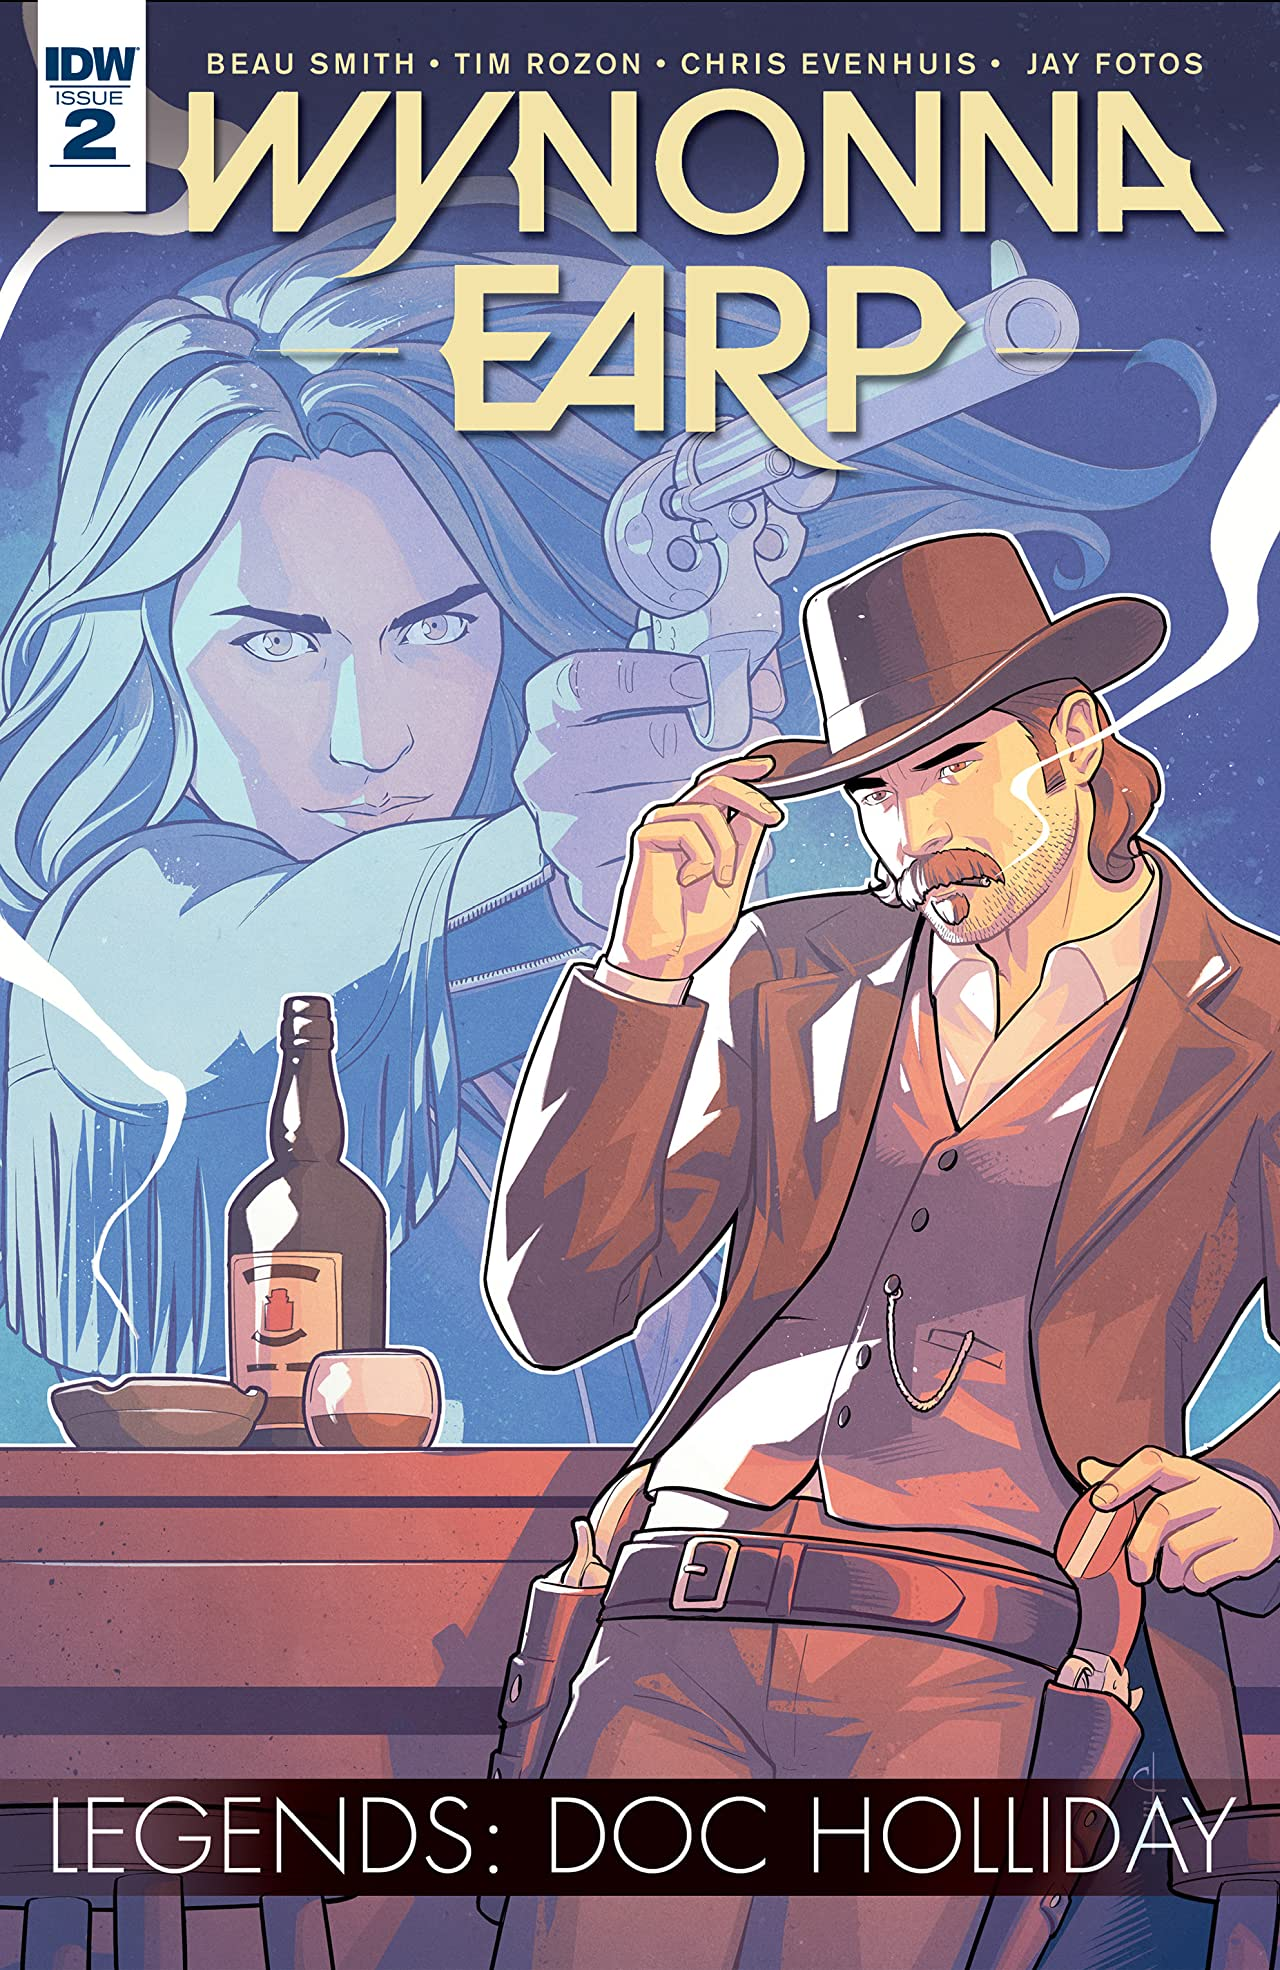 Wynonna Earp Legends: Doc Holliday #2